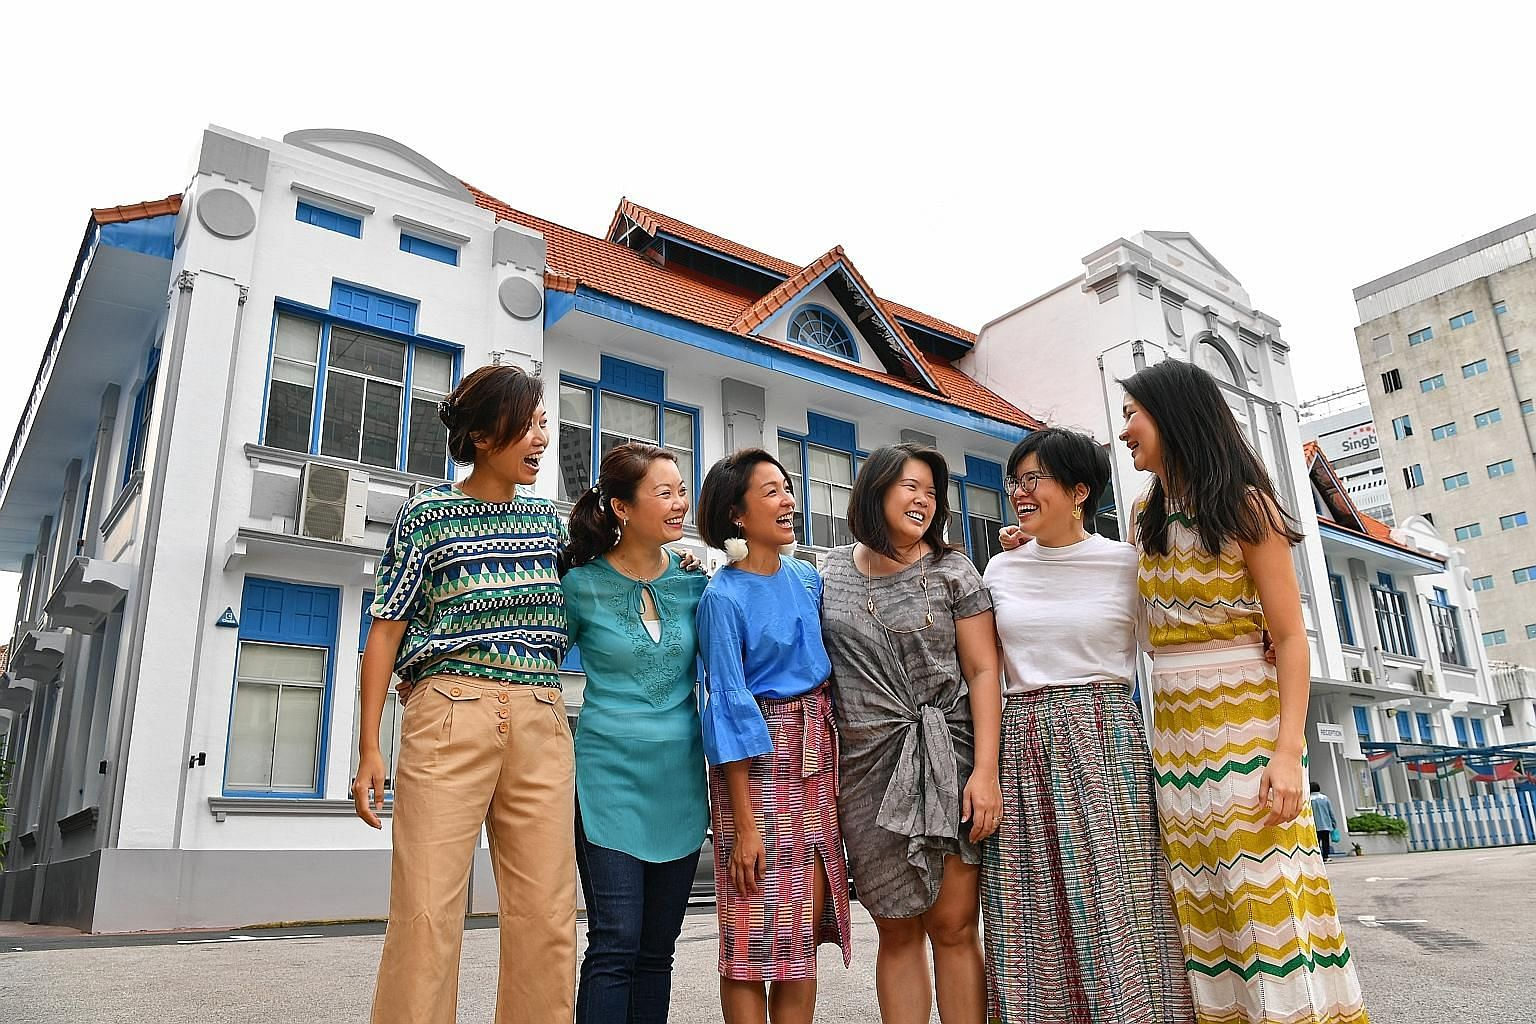 Singapore Chinese Girls' School alumnae (from far left) Daphne Yuan, 34; Lim Swee Keng, 45; Sarah Lin, 35; Melisa Chan, 38; Natalie Kwee, 30; and Jackie Lin, 33, at the site of their old school campus. The team of volunteers launched the campaign to